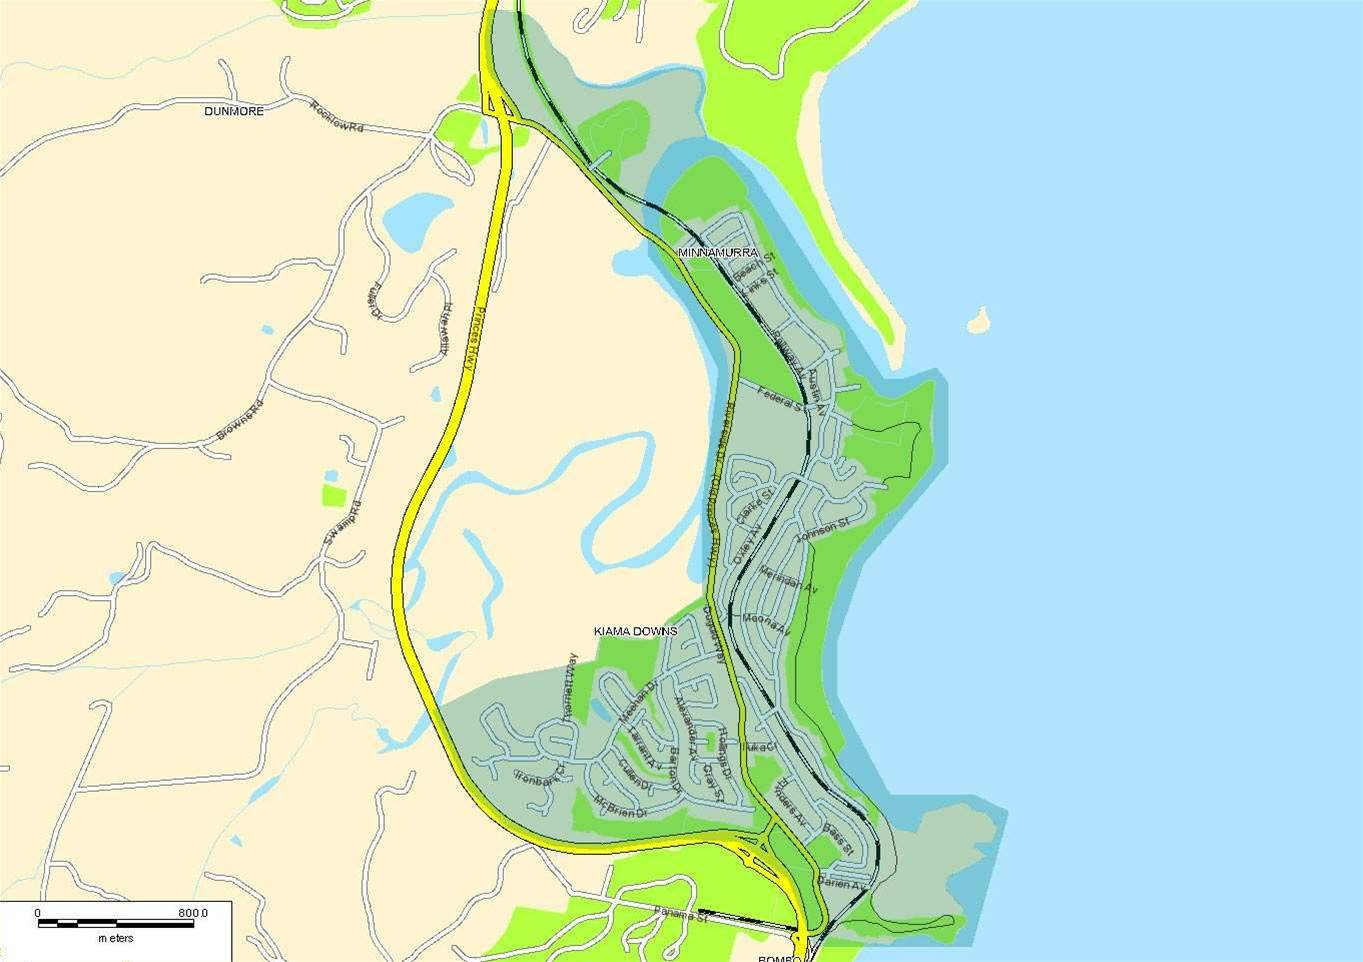 Kiama/Minnamurra (clieck to enlarge) - The recently developed Kiama Downs and Minnamurra, on NSW South Coast, will also be a testbed site.